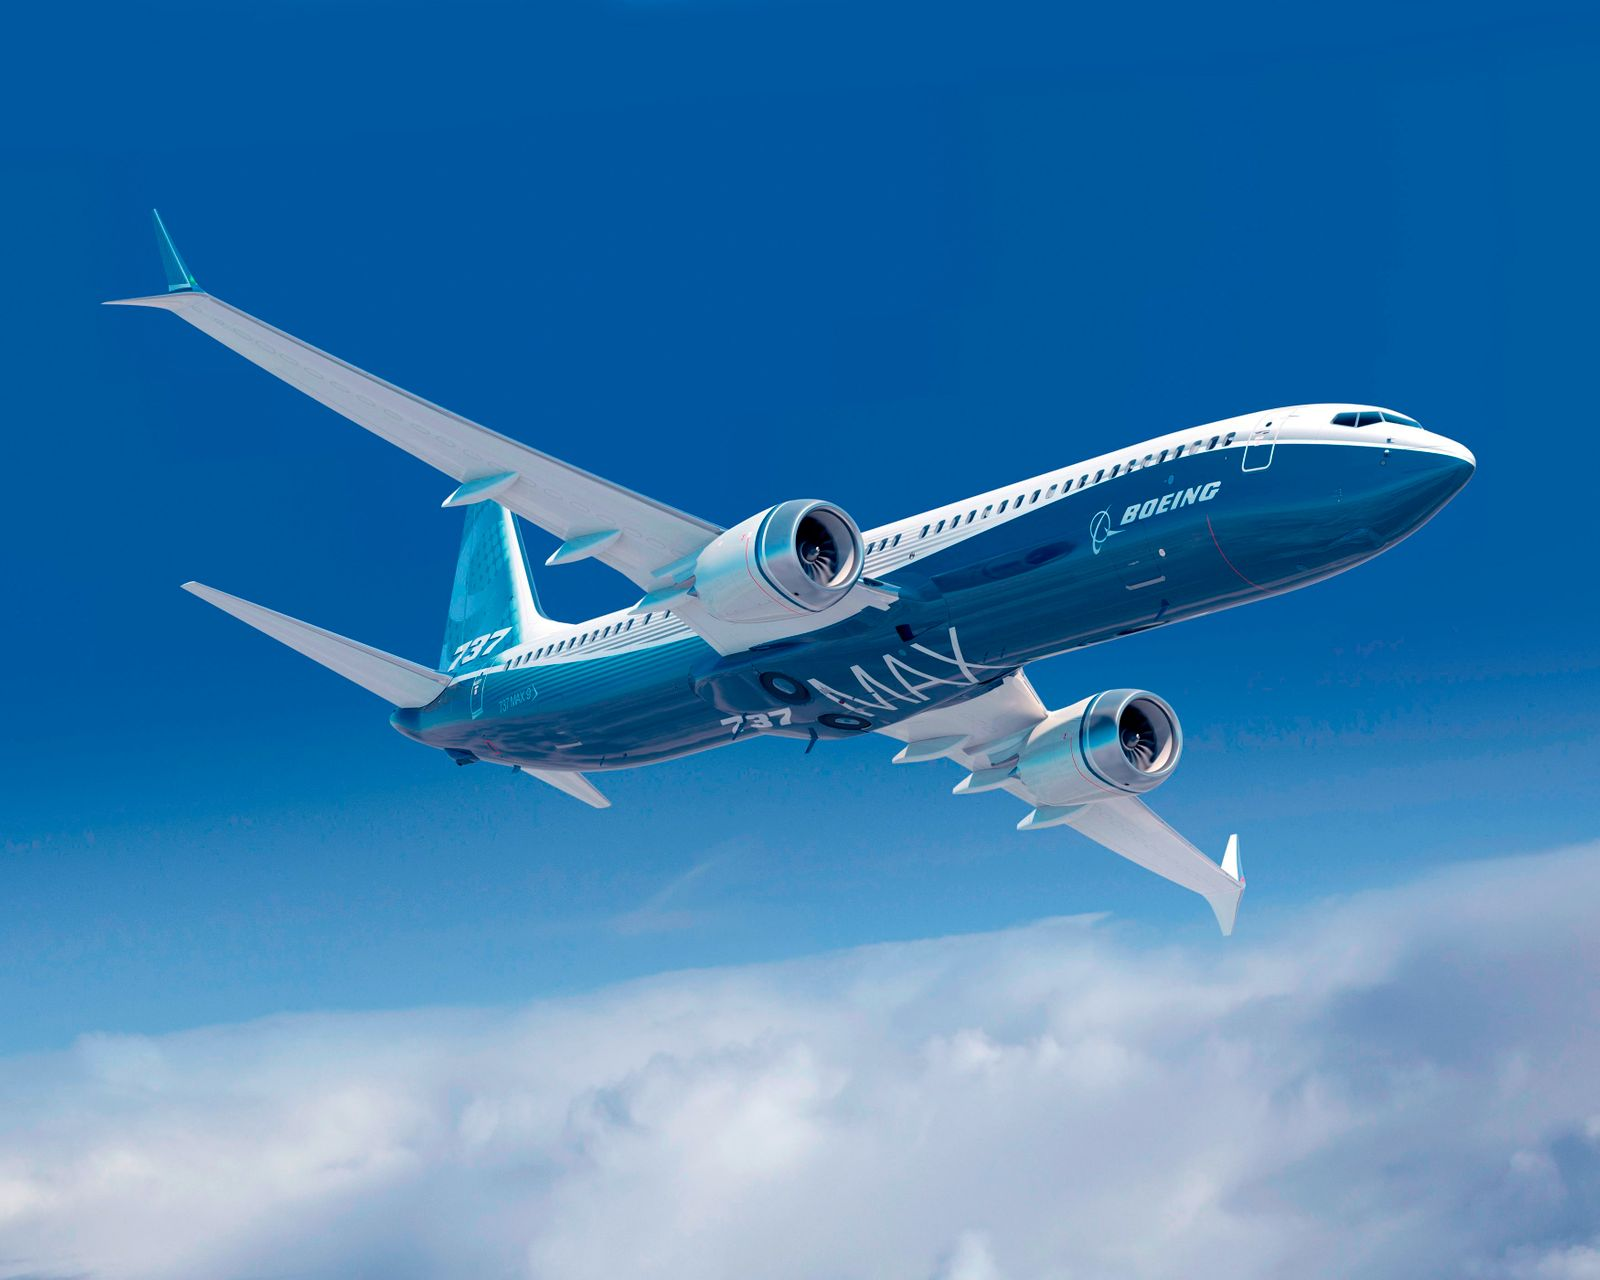 Handout photo of a Boeing 737 MAX airplane